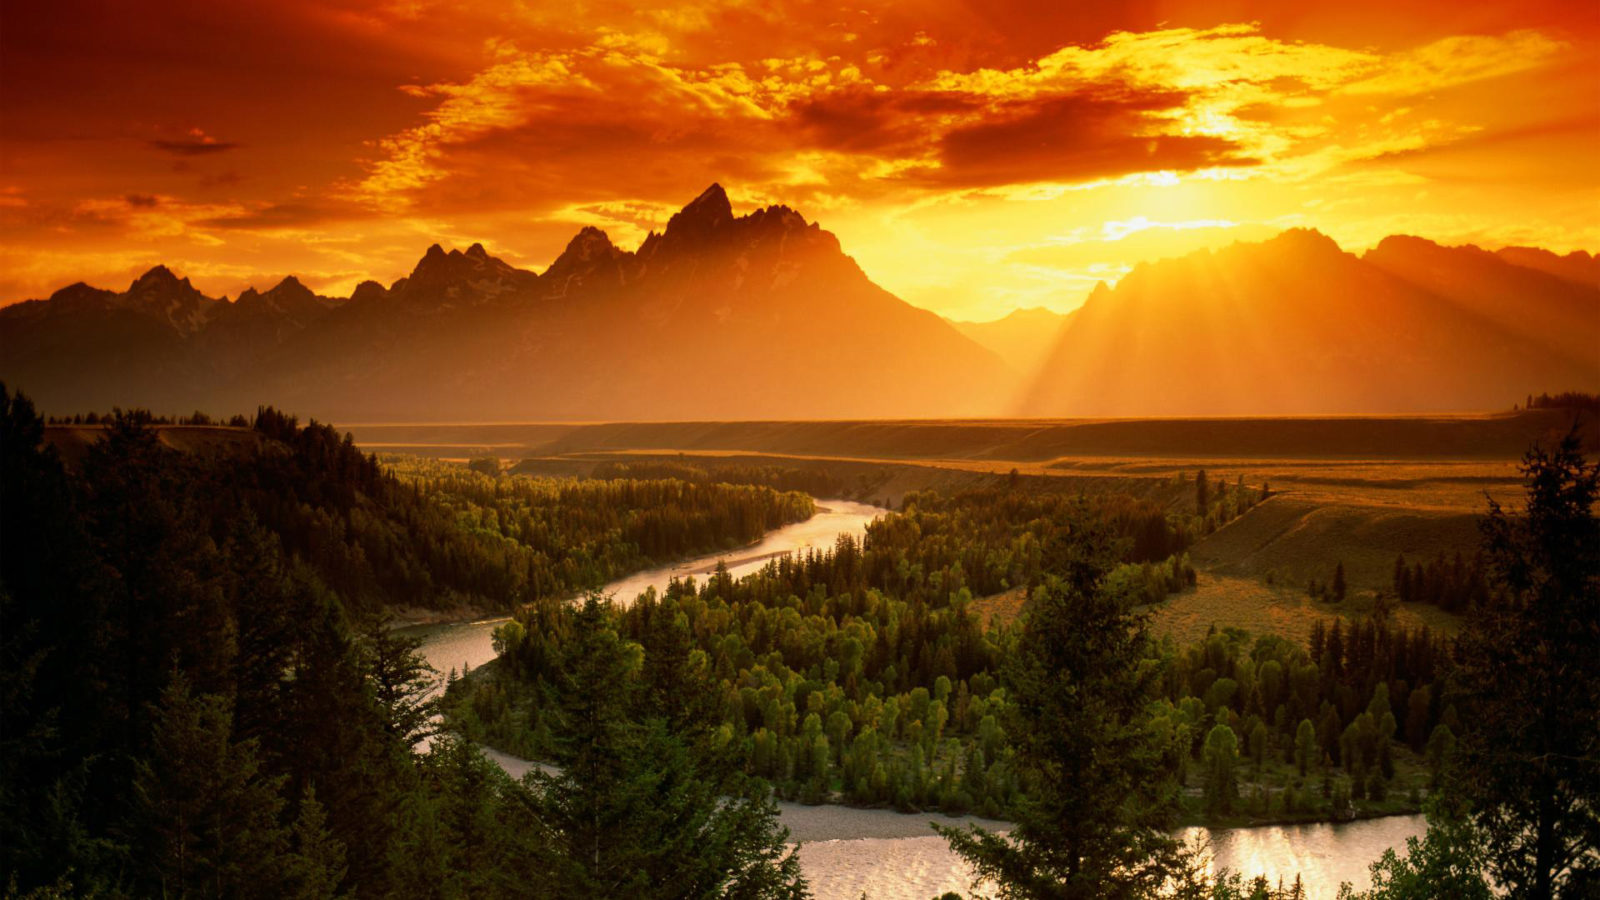 sun, mountain, nature desktop free background #1556